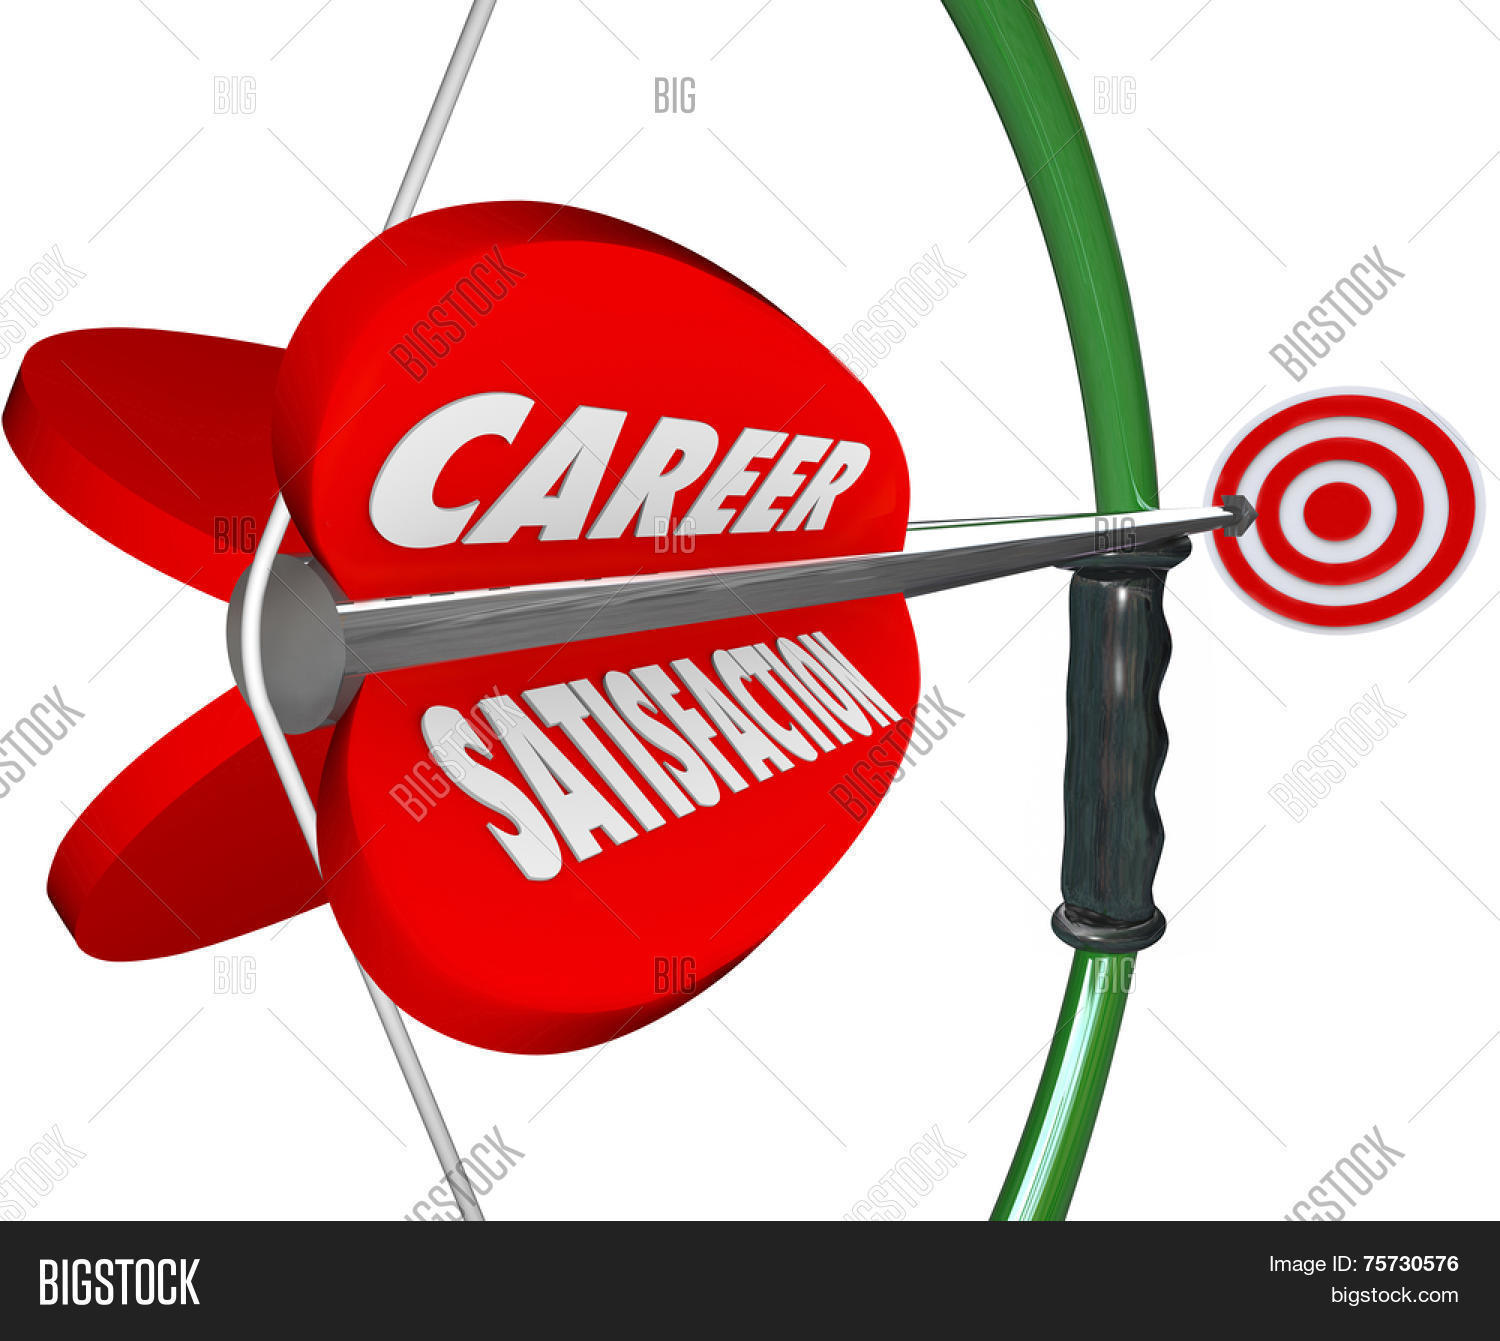 career satisfaction words on a d bow and arrow to illustrate job career satisfaction words on a 3d bow and arrow to illustrate job or work happiness